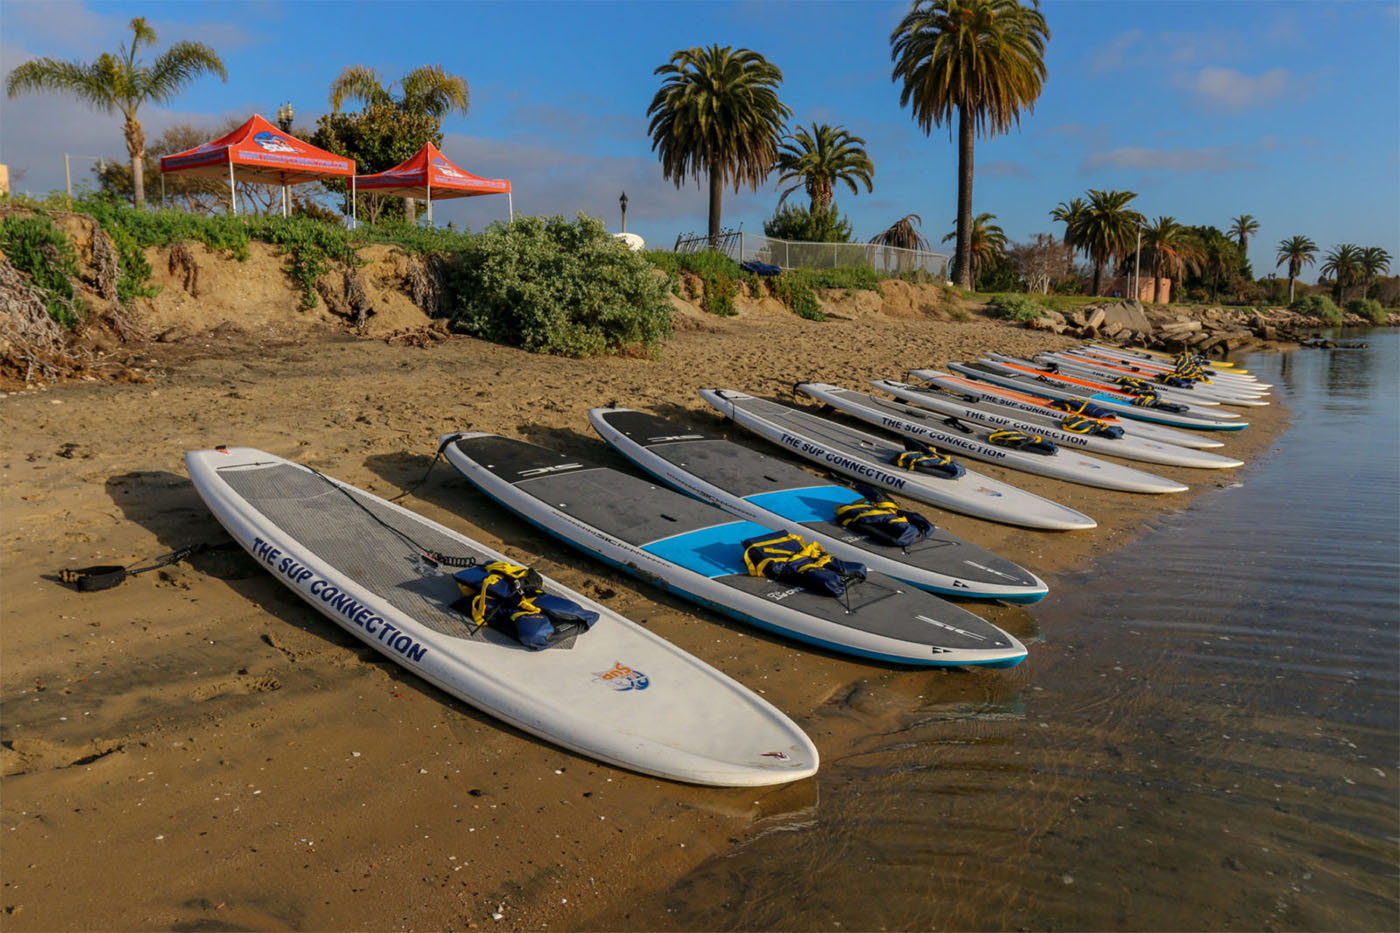 san diego sup rentals, san diego paddleboard rentals, paddleboard rentals san diego, rent paddleboard san diego, sup san diego, san diego paddleboard lessons, paddle board lessons san diego, paddle boarding san diego, stand up paddle board lessons san diego, paddle boarding lessons san diego, pb surf shop, where to paddleboard in san diego, stand up paddle, the sup, kayak rental malibu